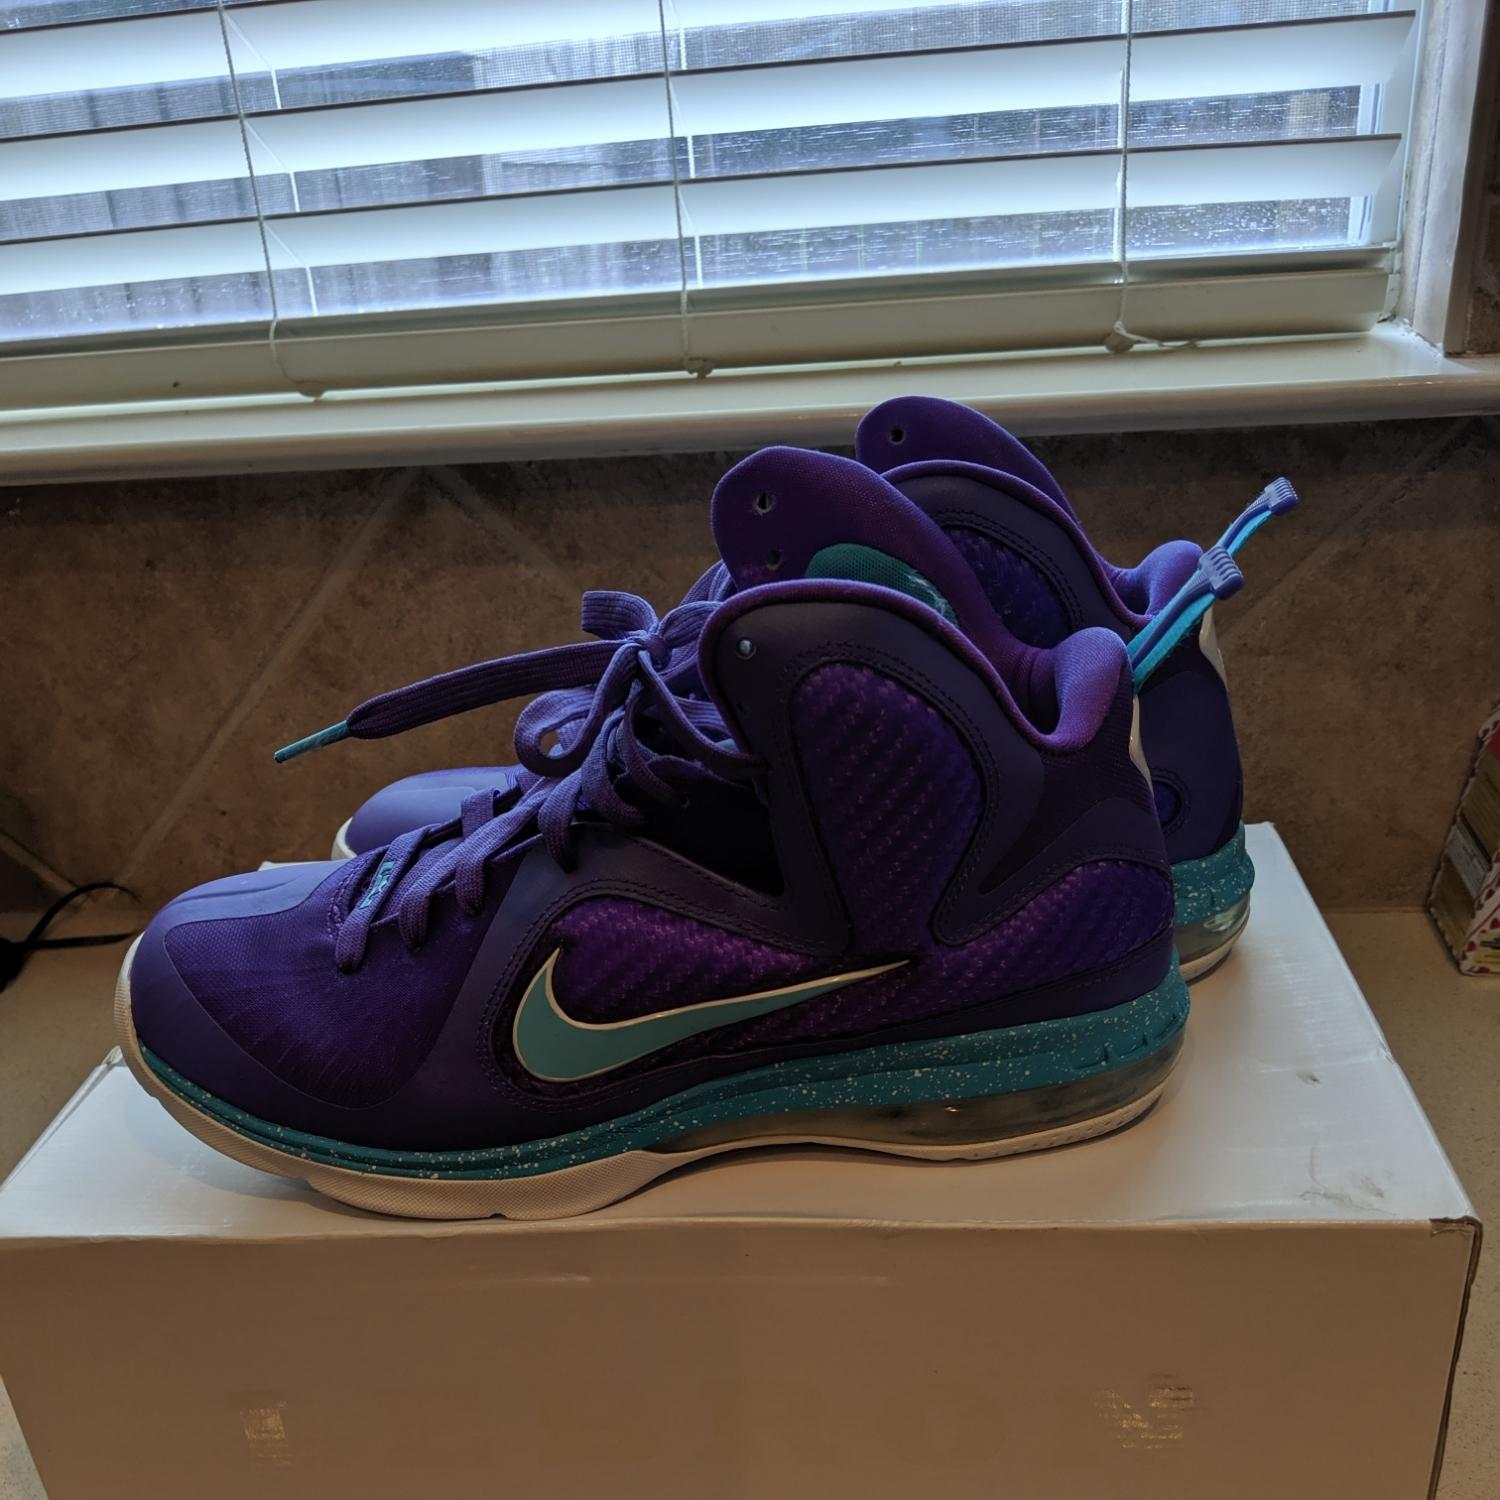 Nike Purple/Turquoise Athletic